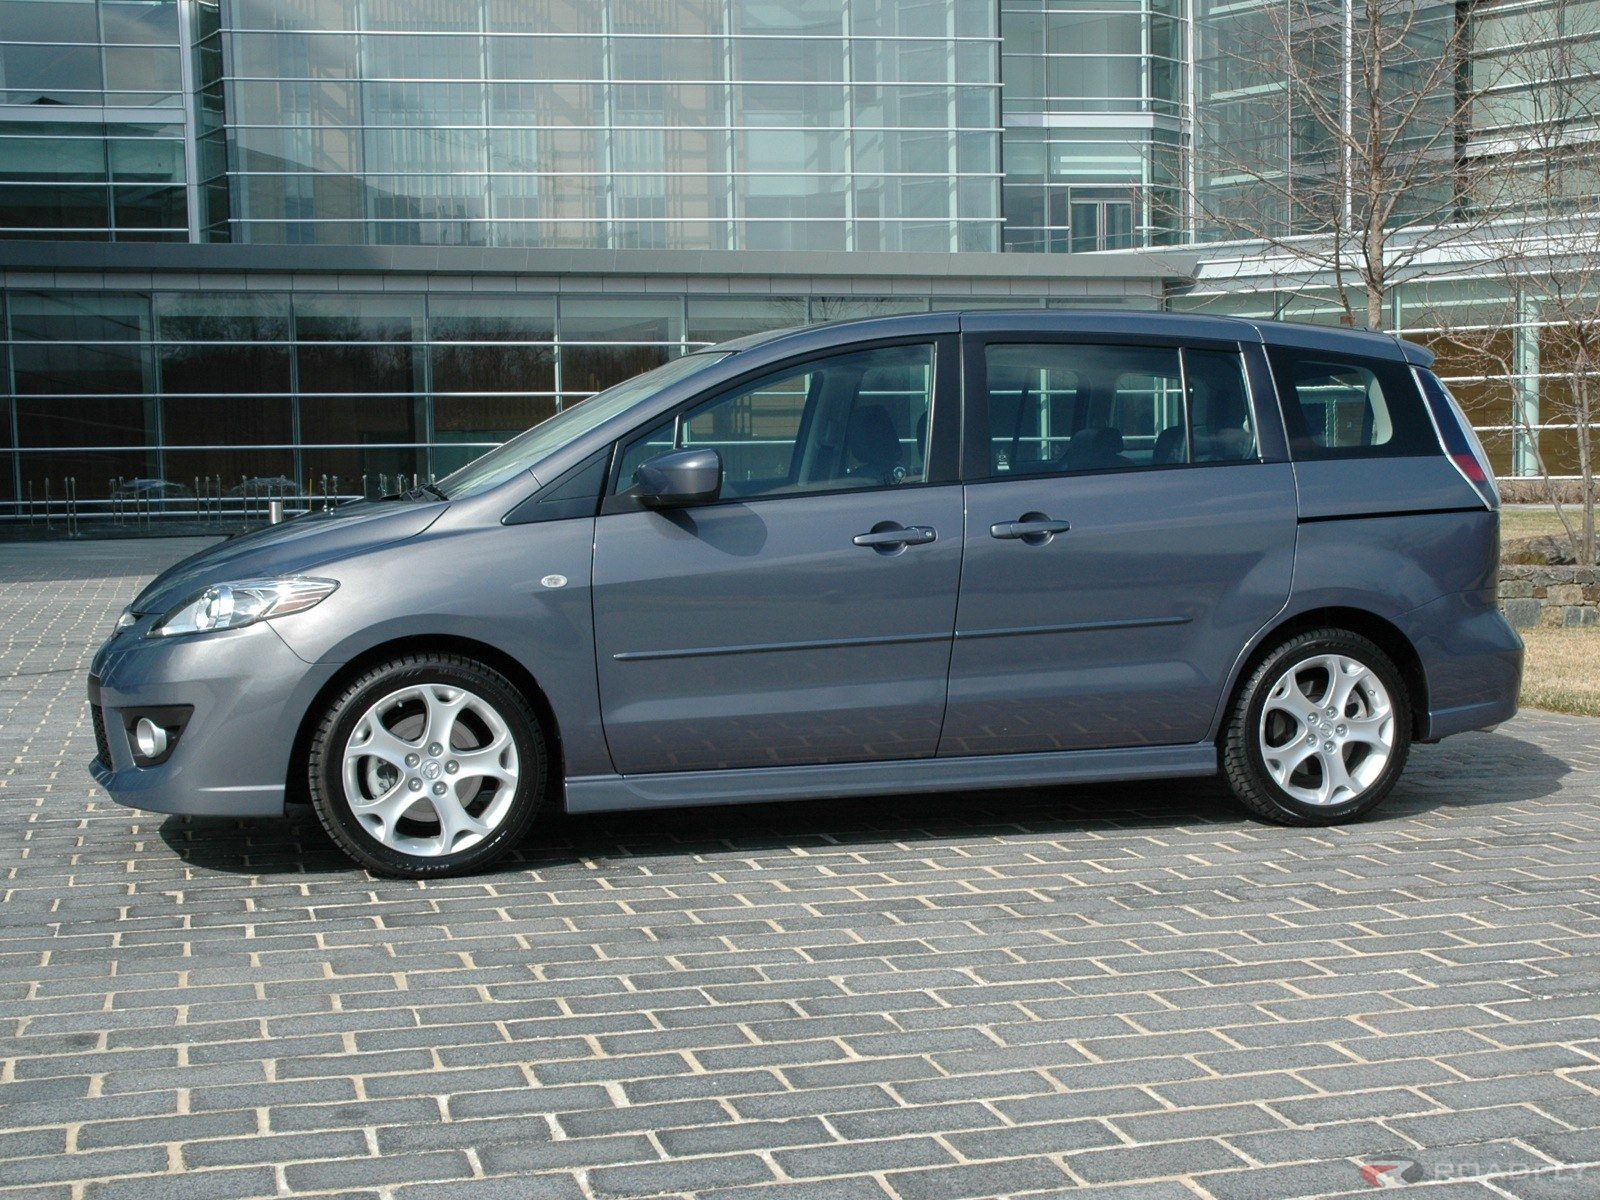 Mazda 5 Vs Kia Rondo – and That is Which?